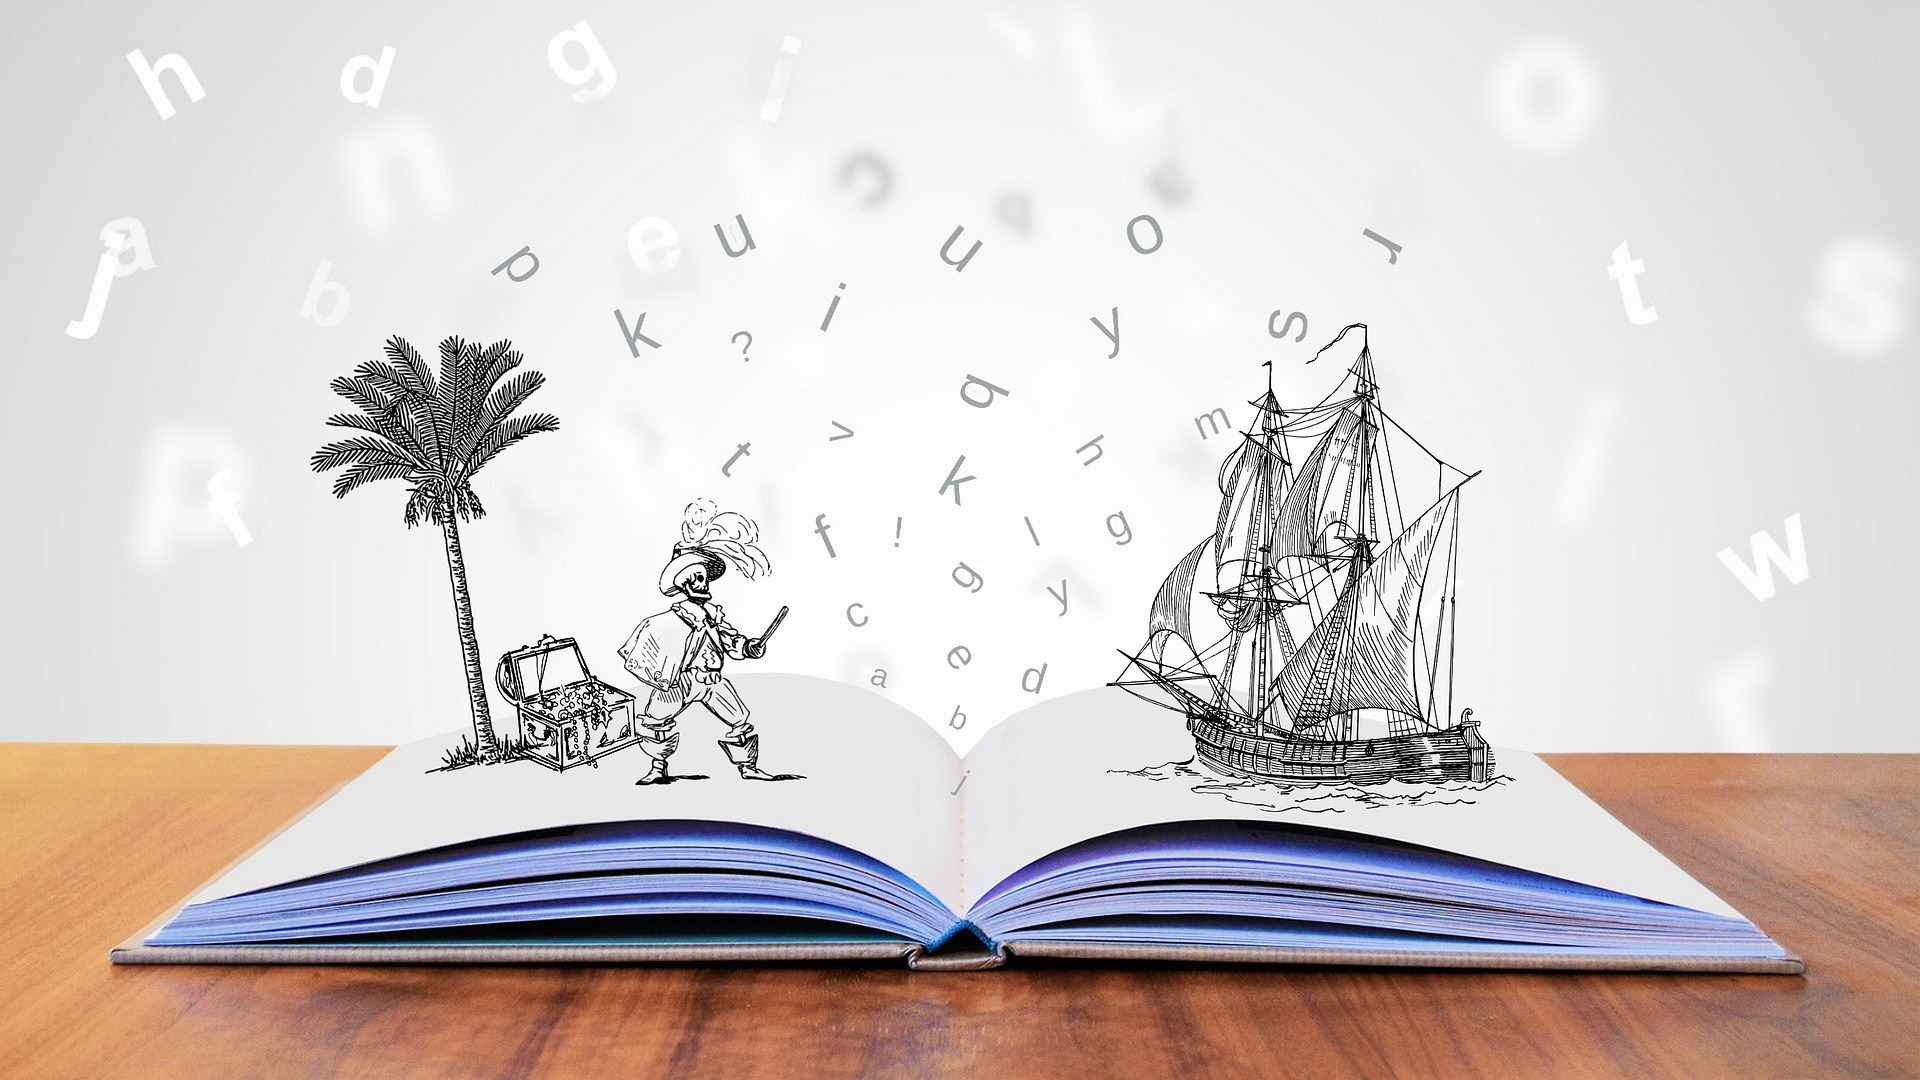 Illustration of pirate and a book